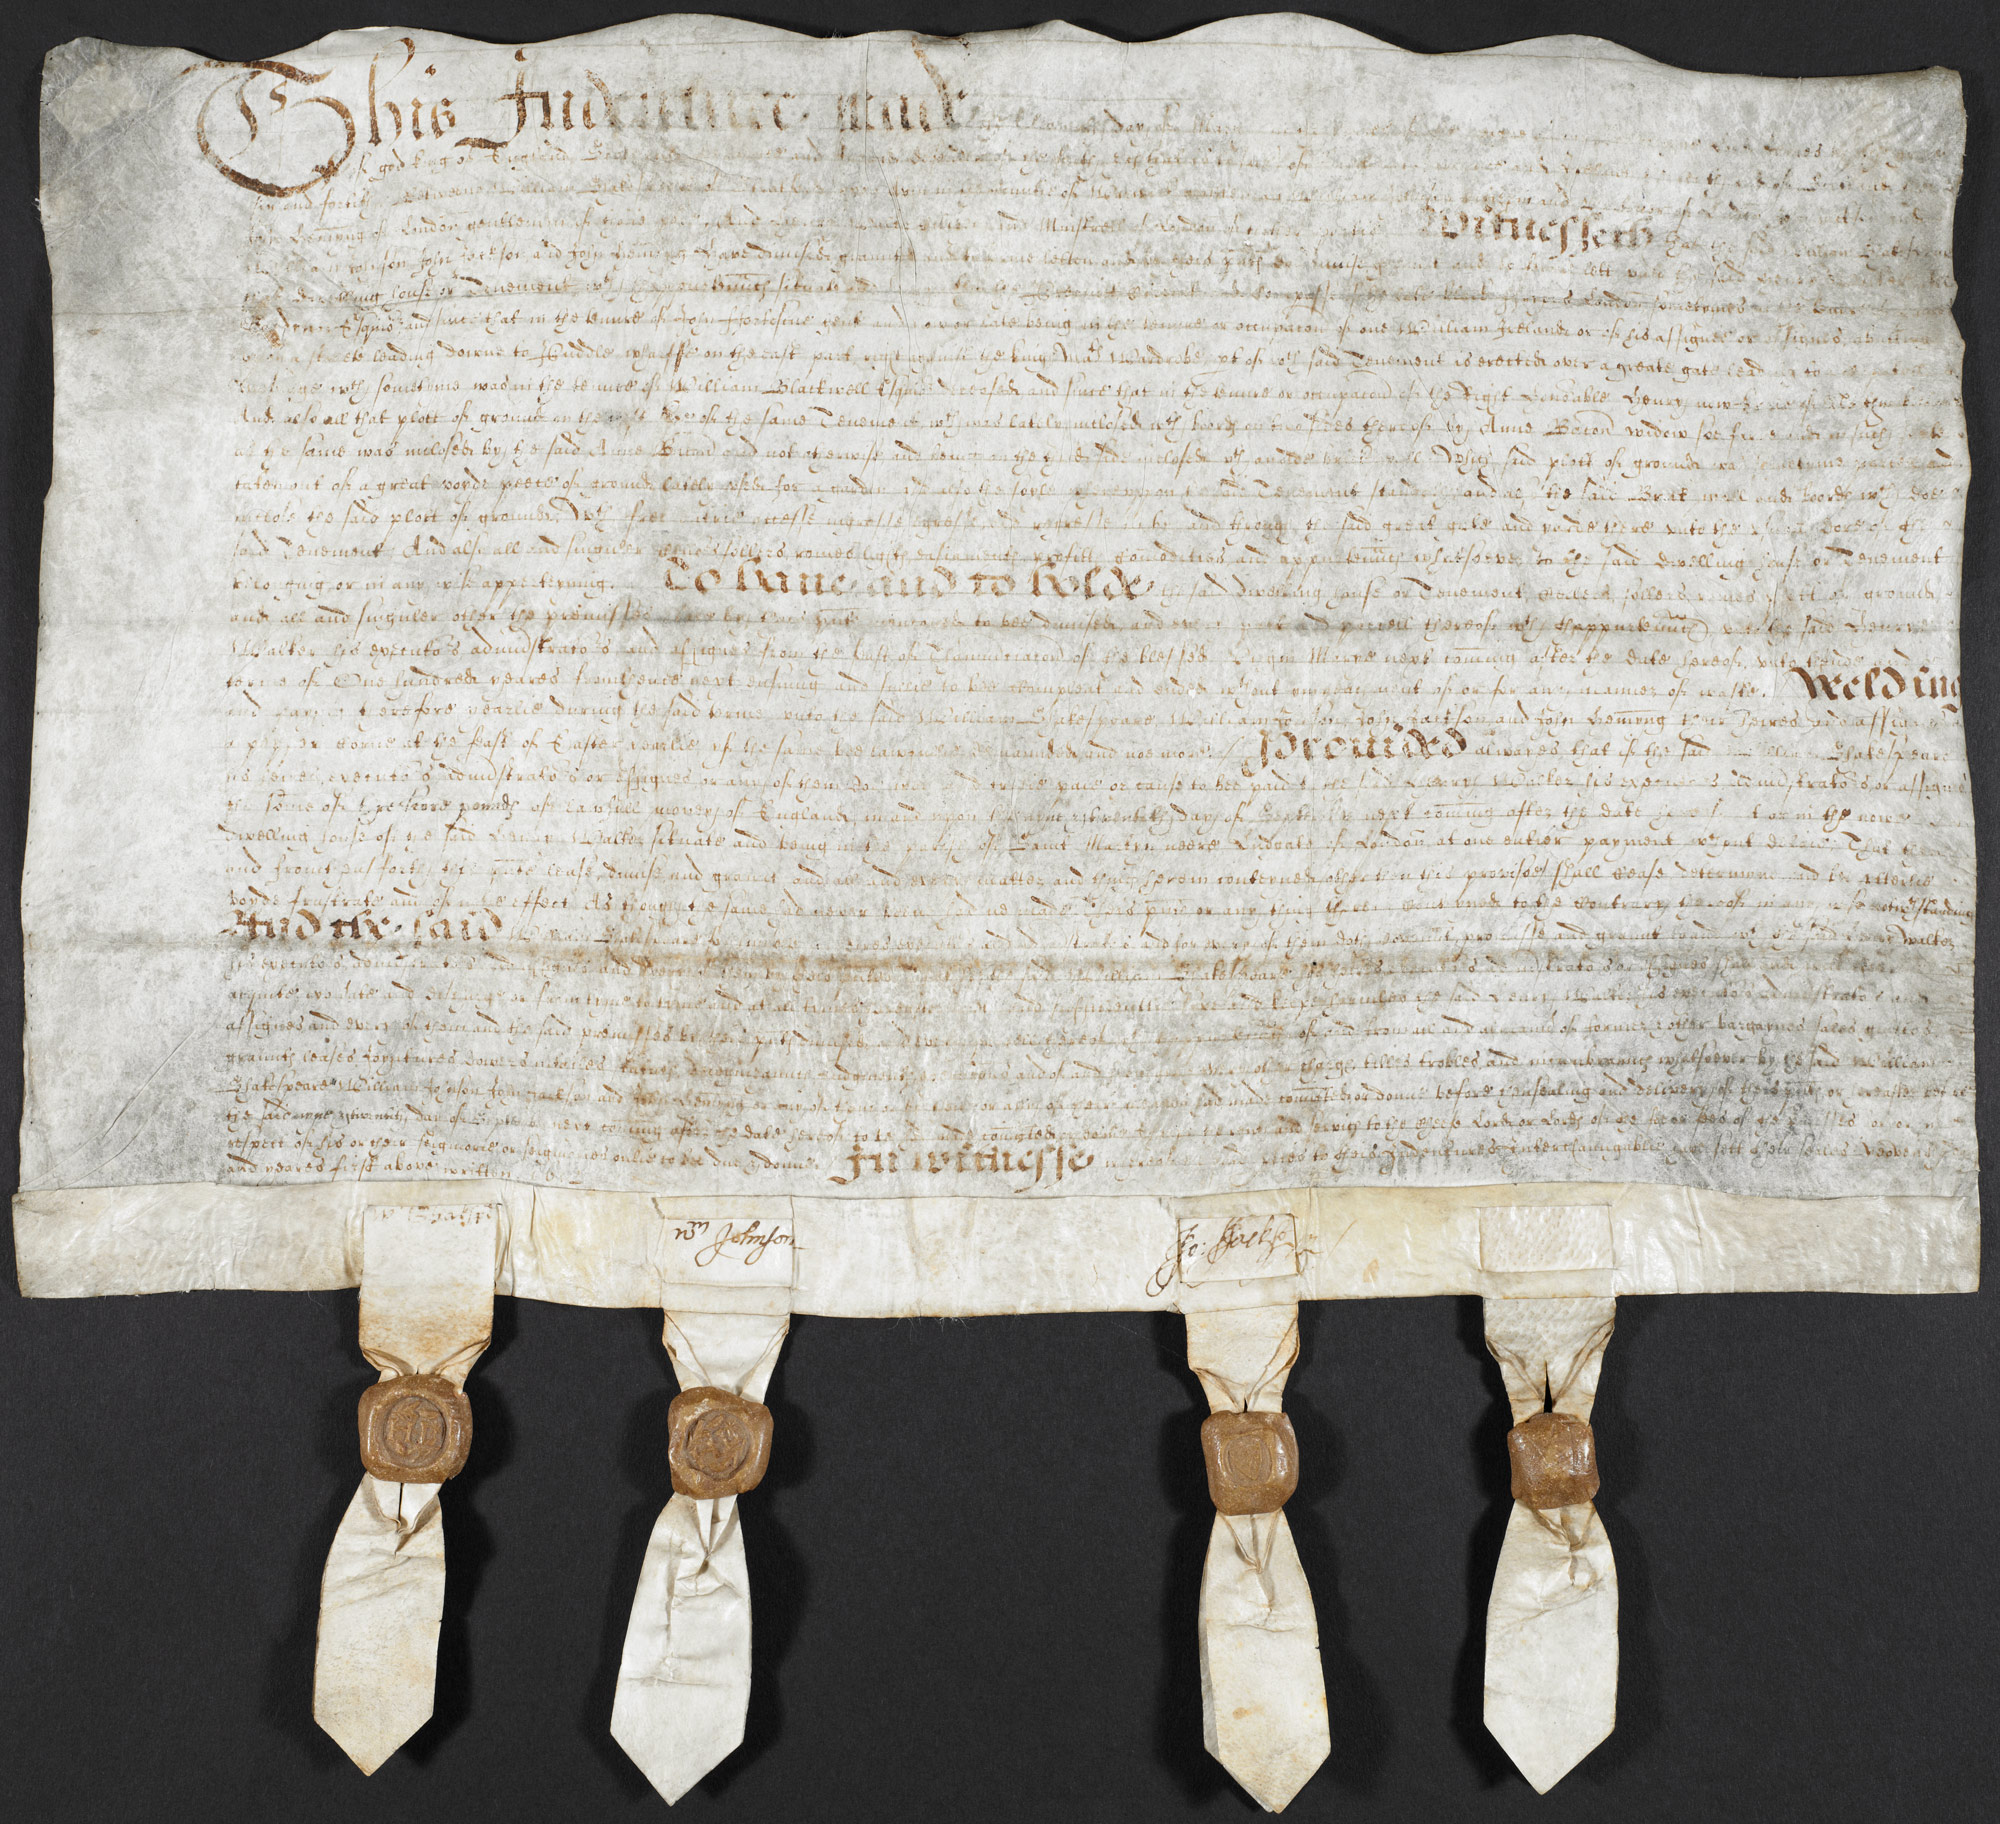 Original Mortgage Deed of William Shakespeare with a verified signature